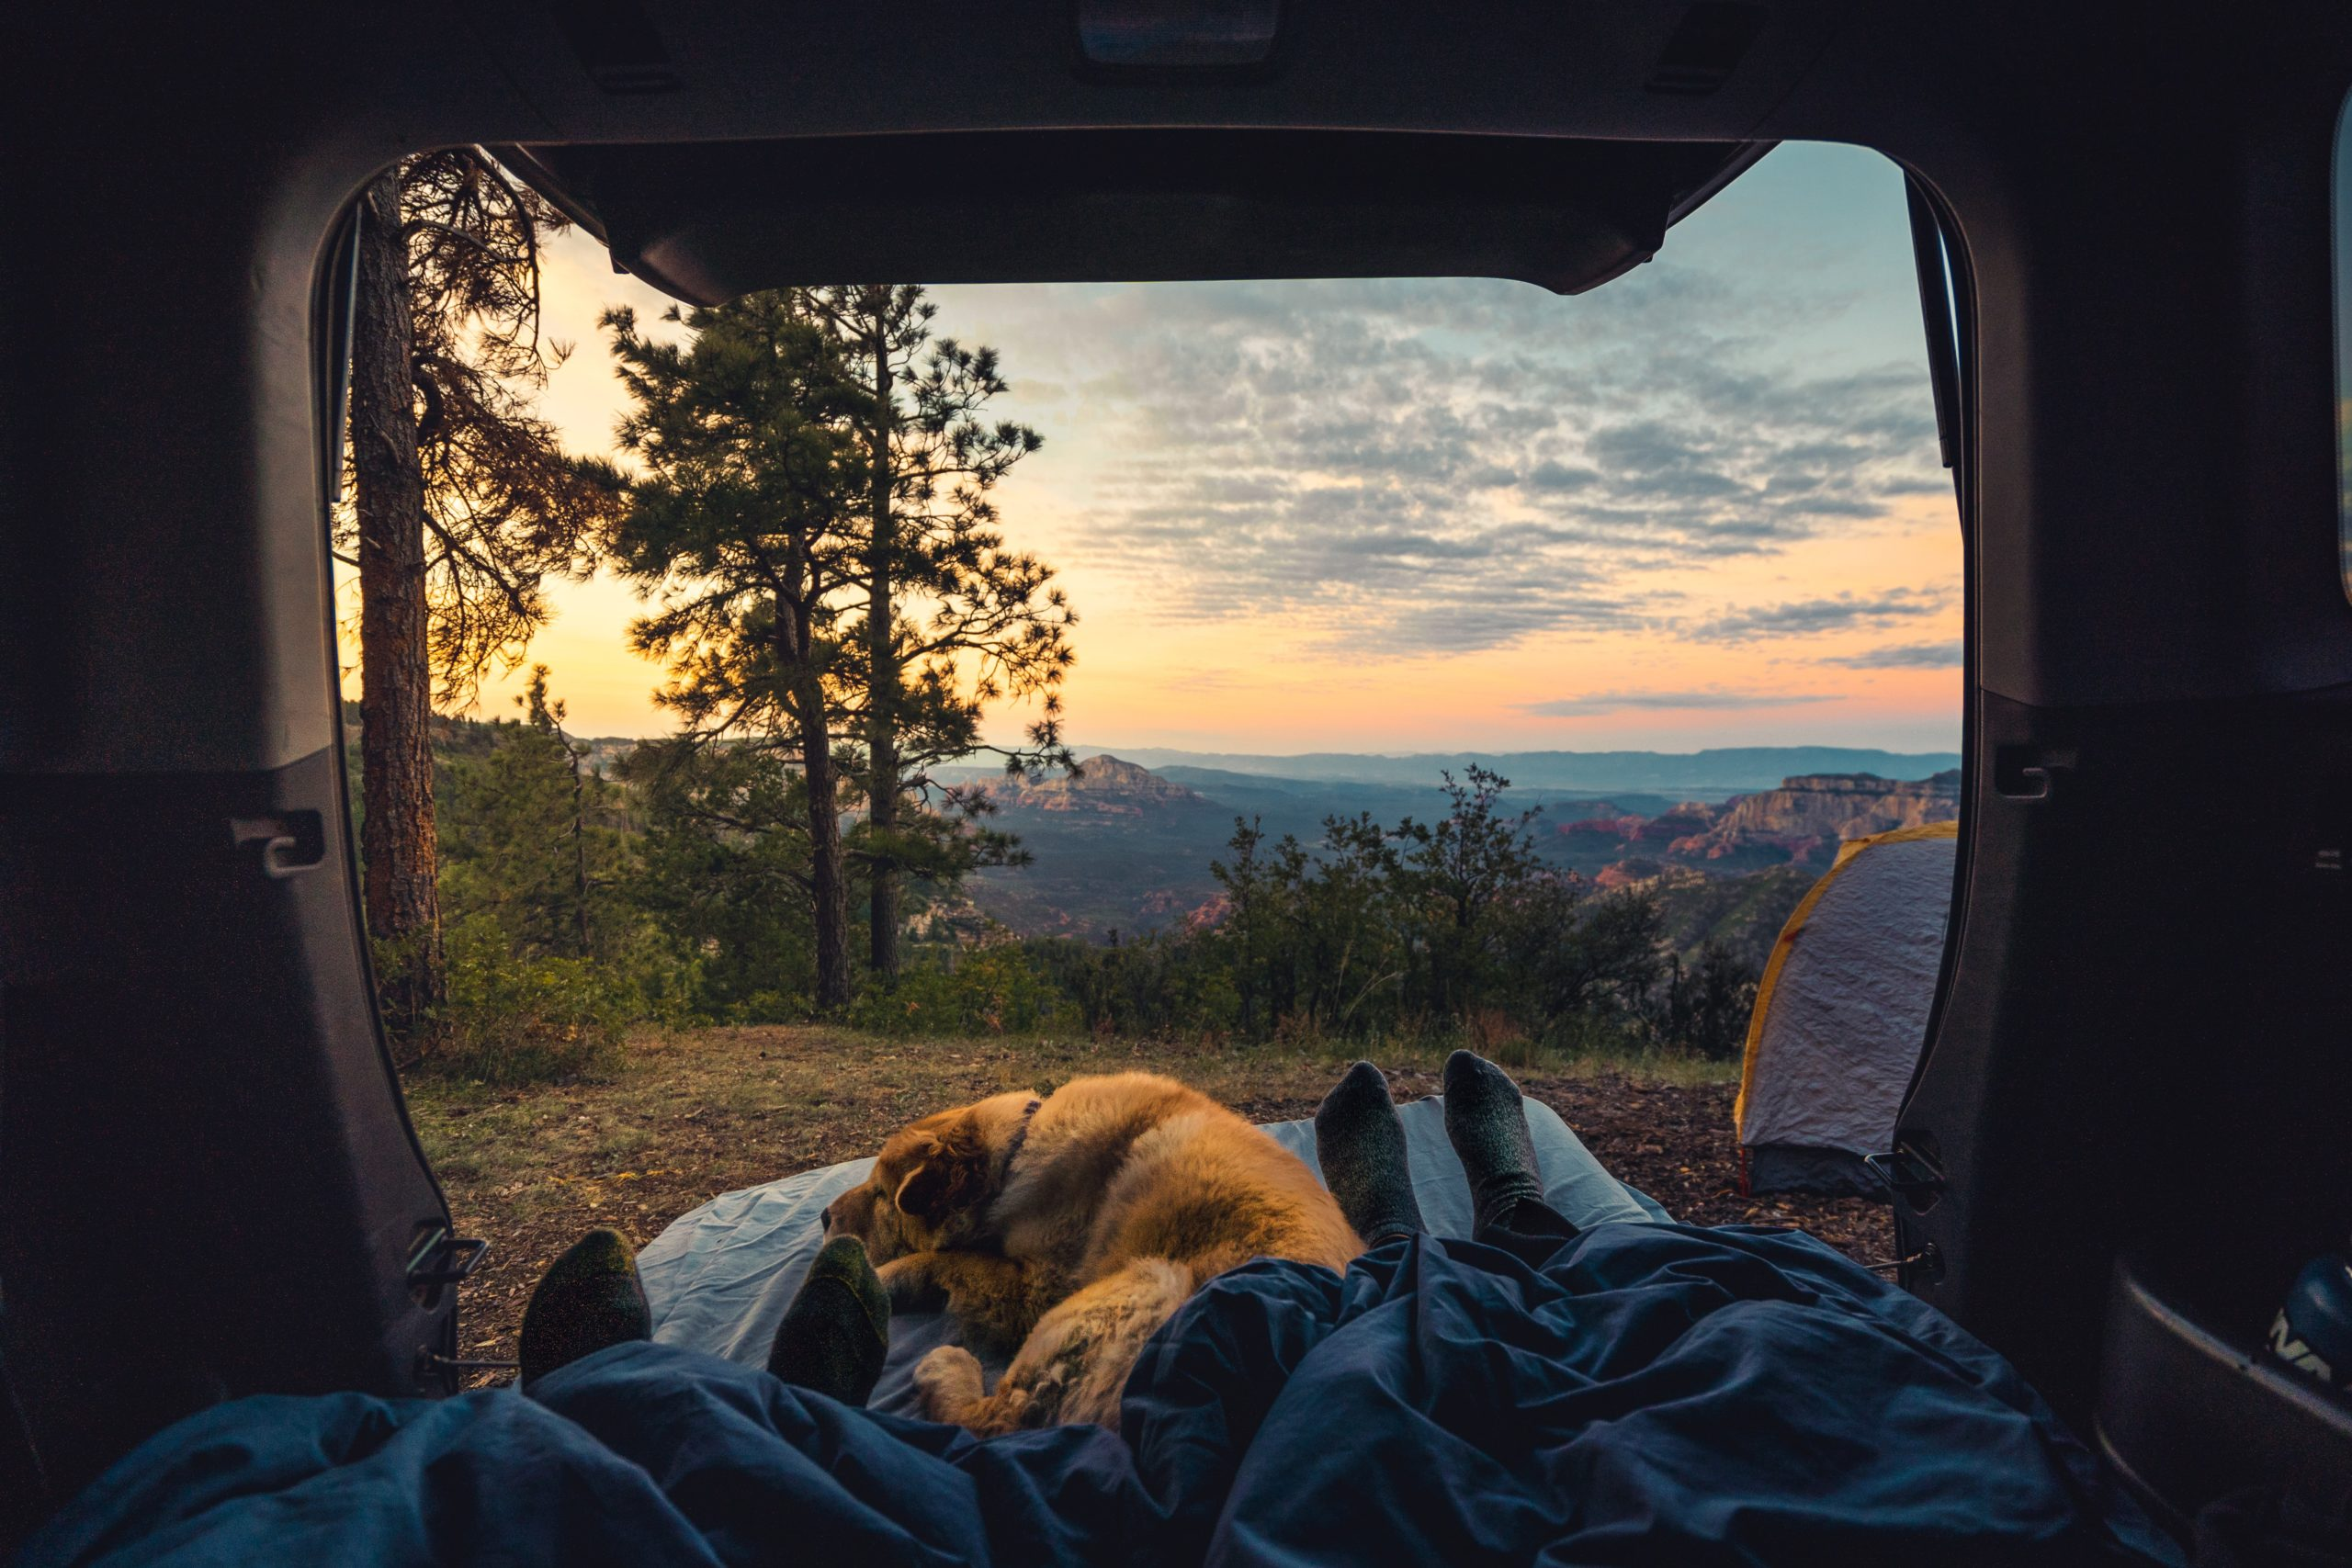 THE CHARM OF CAMPING